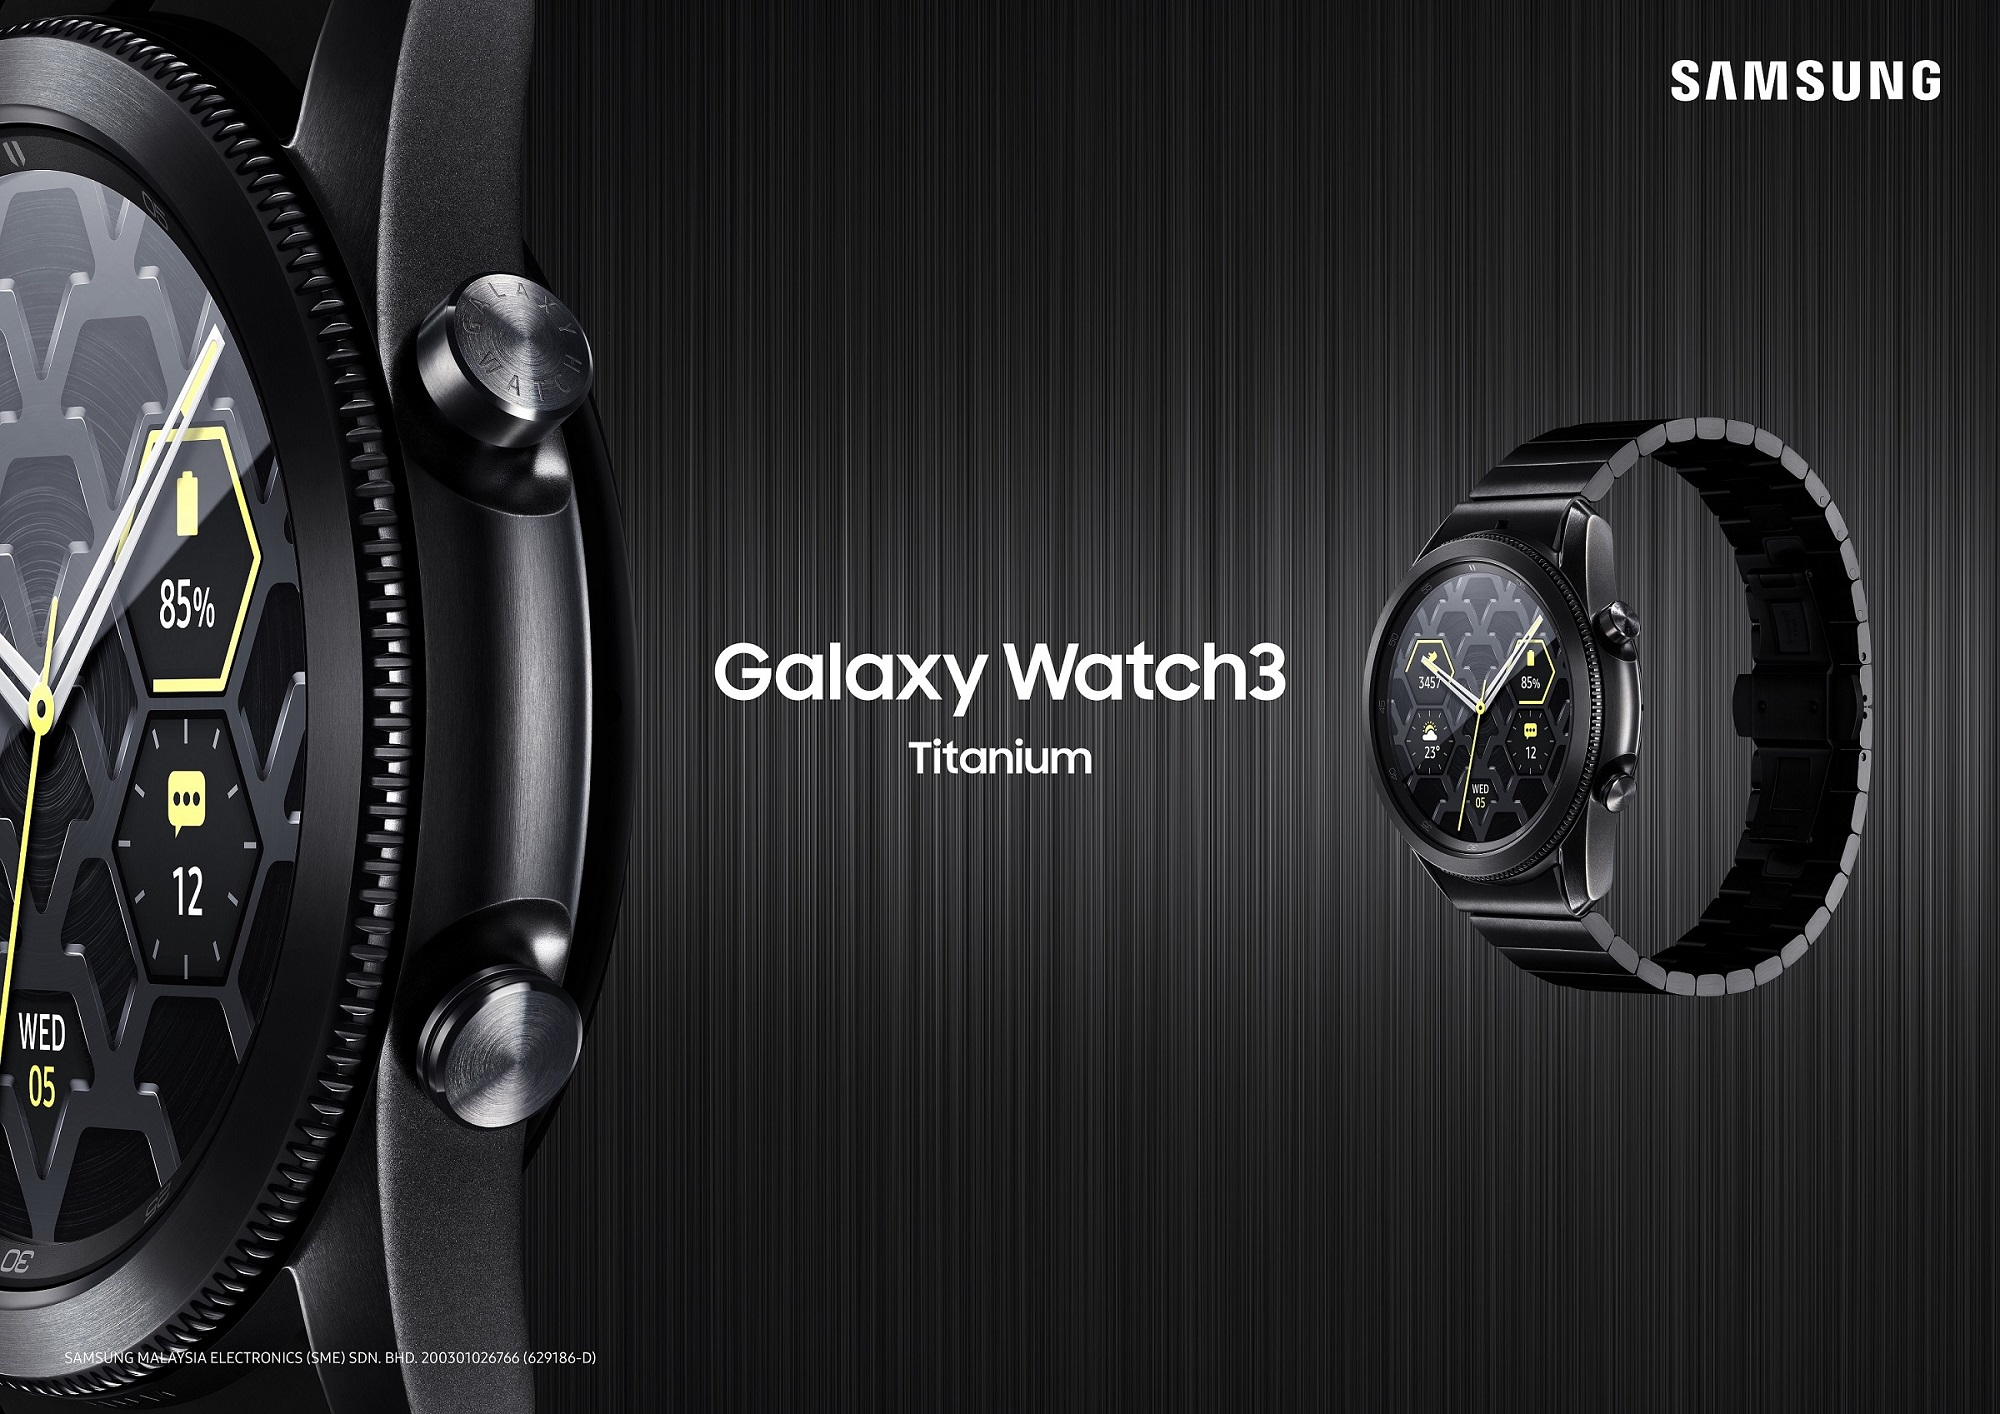 Samsung Launches Galaxy Watch3 Titanium - Merging Luxury with Durability